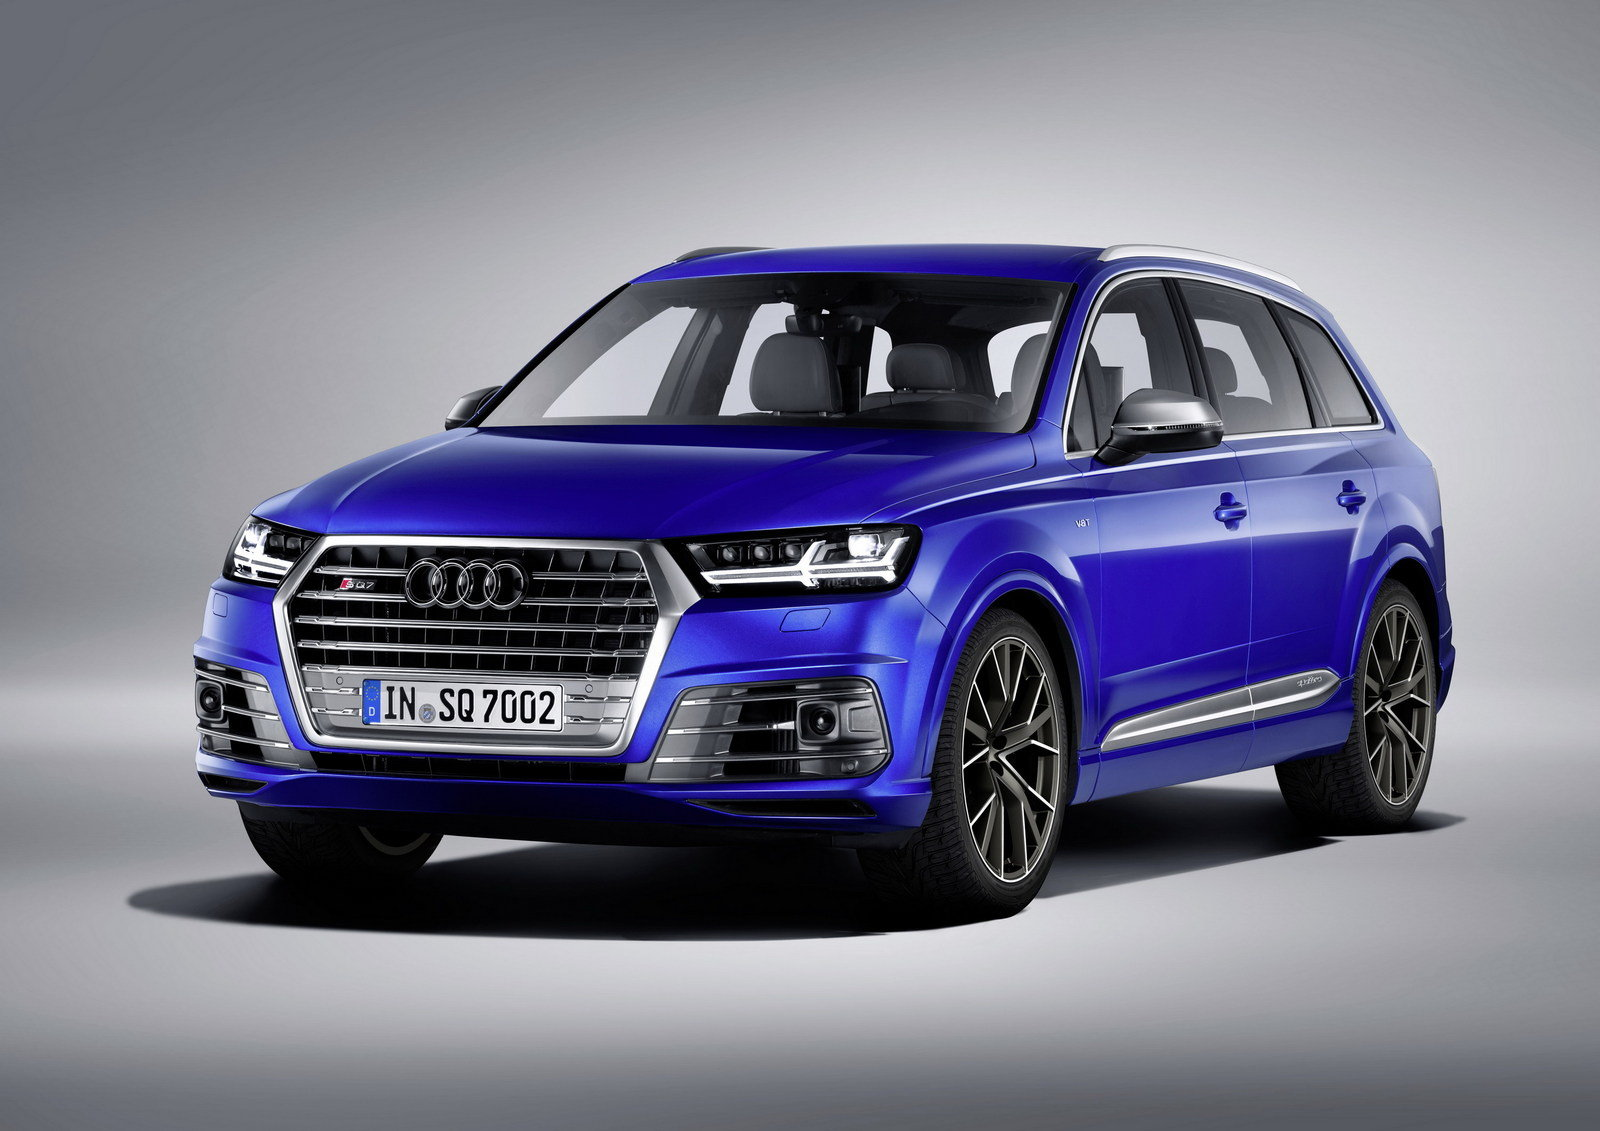 2017 audi sq7 picture 668219 car review top speed. Black Bedroom Furniture Sets. Home Design Ideas